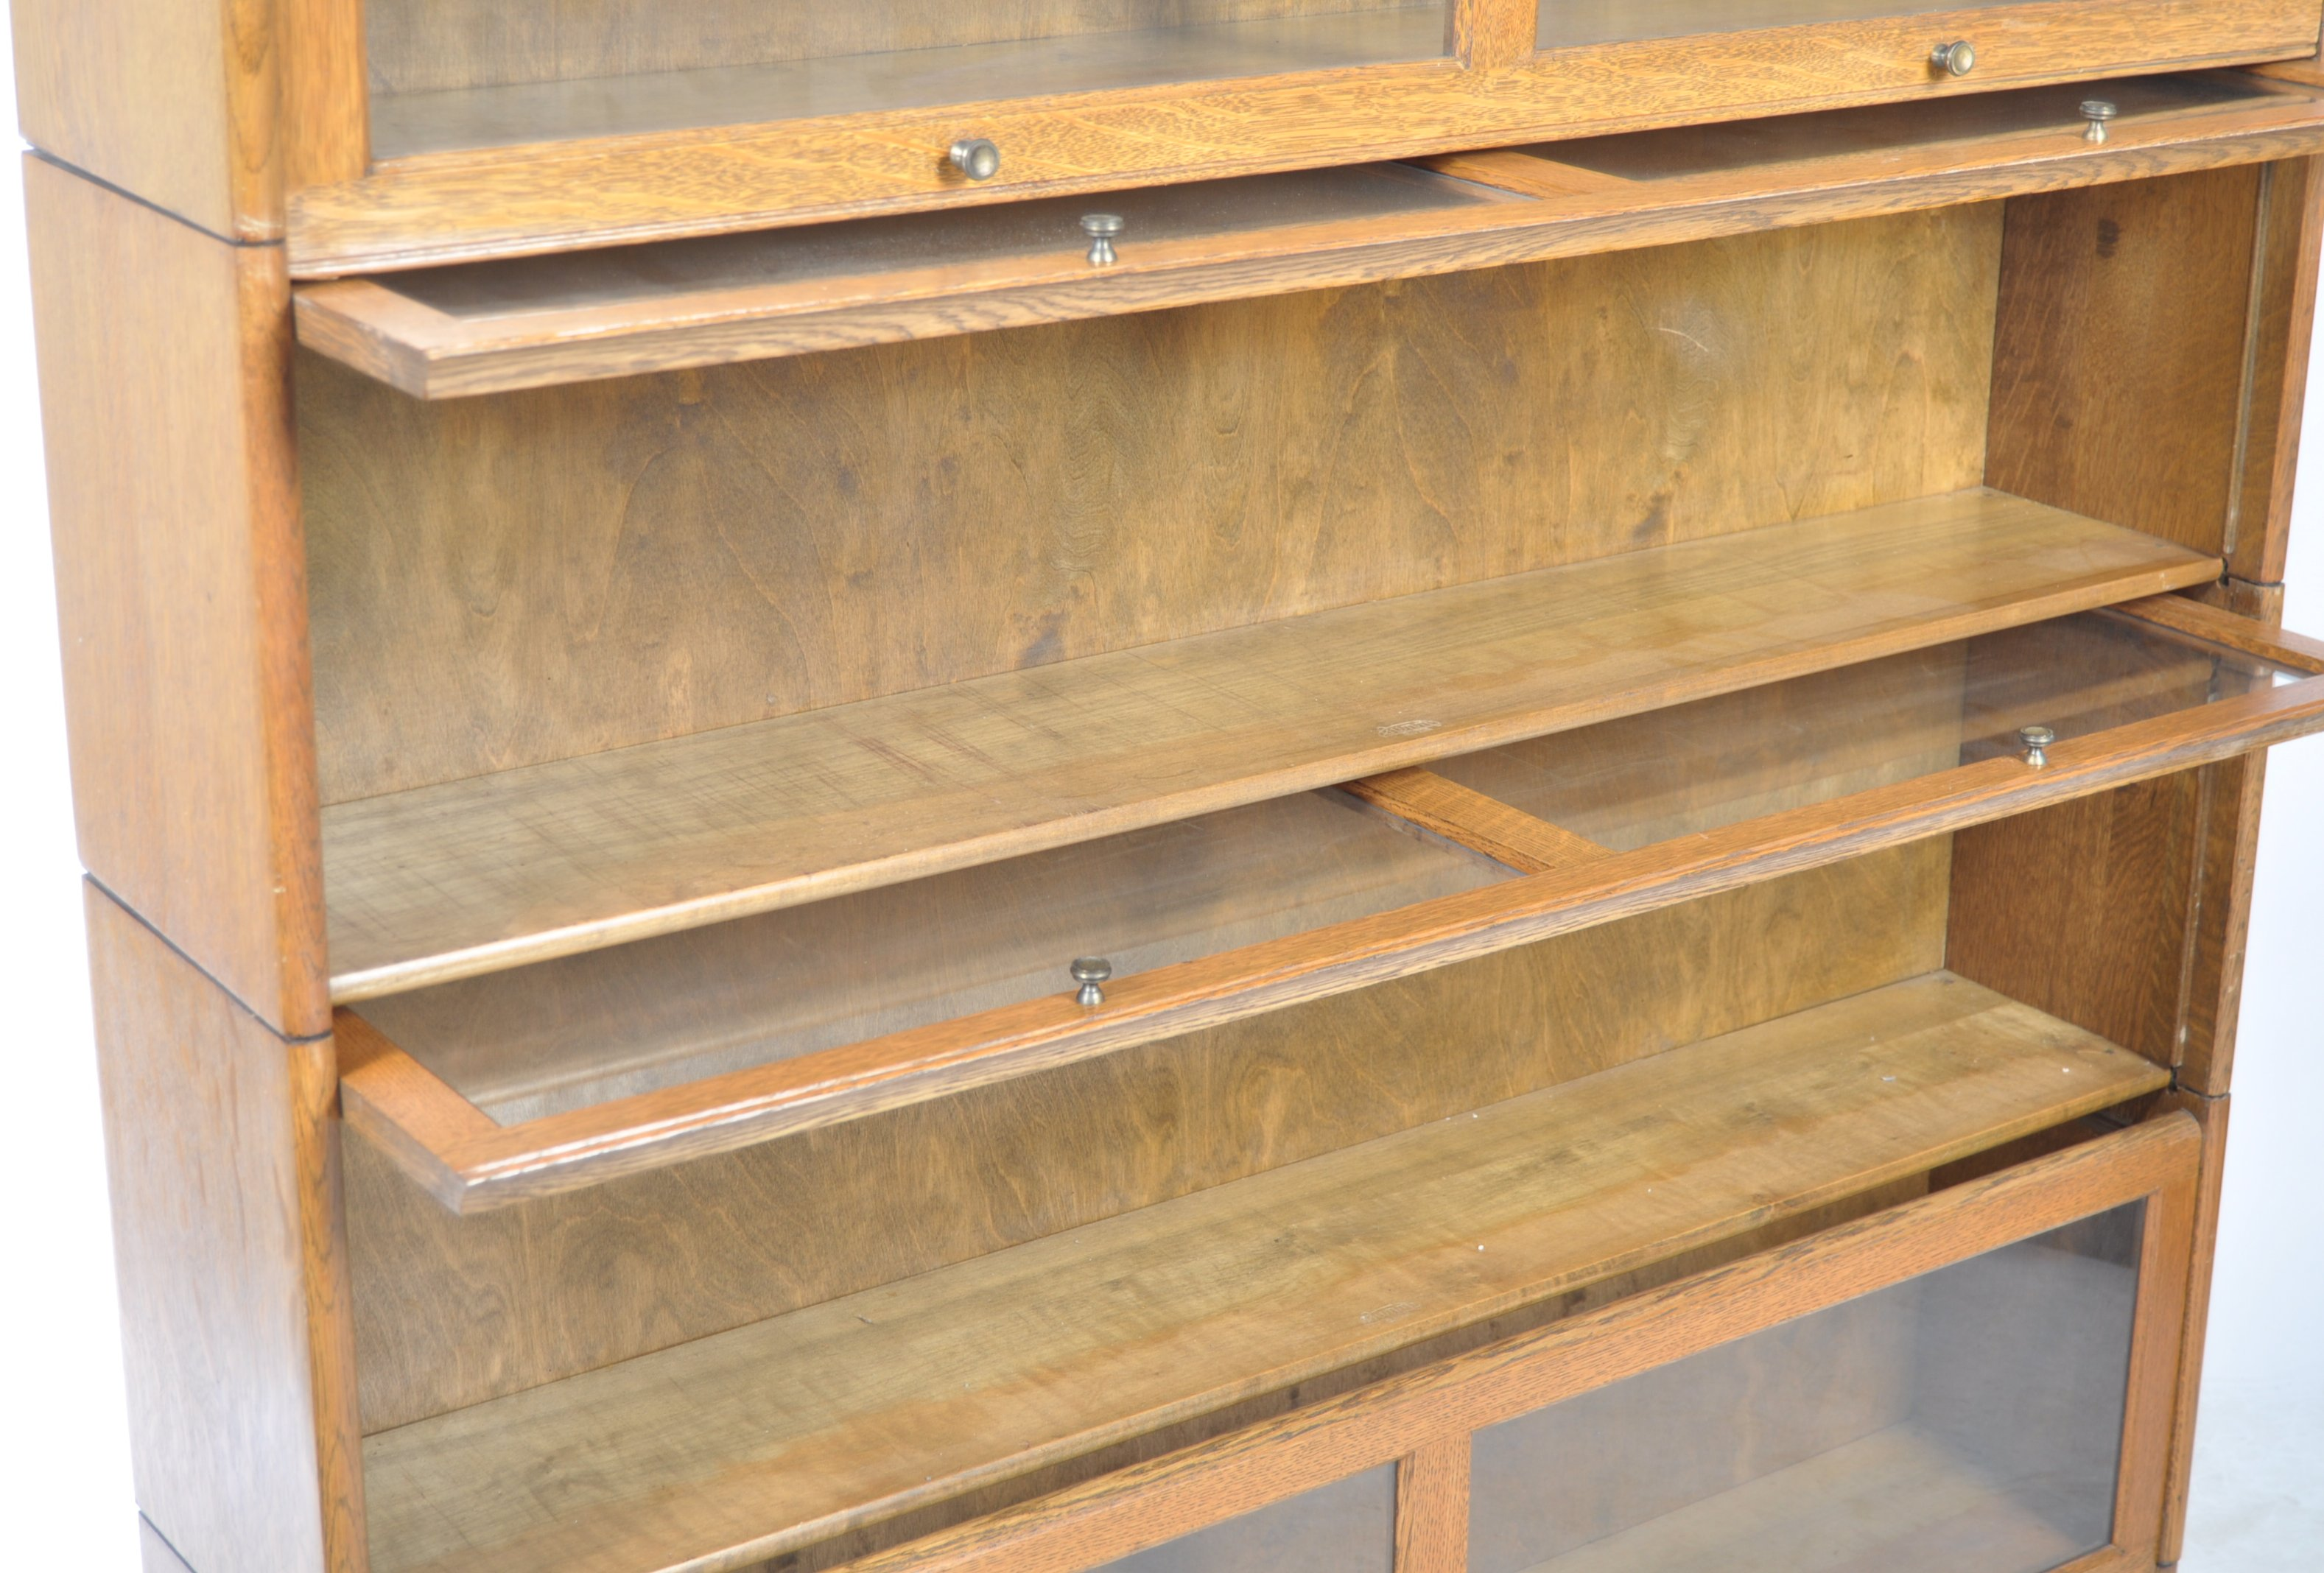 EARLY 20TH CENTURY FOUR SECTION LAWYERS STACKING BOOKCASE - Image 5 of 6